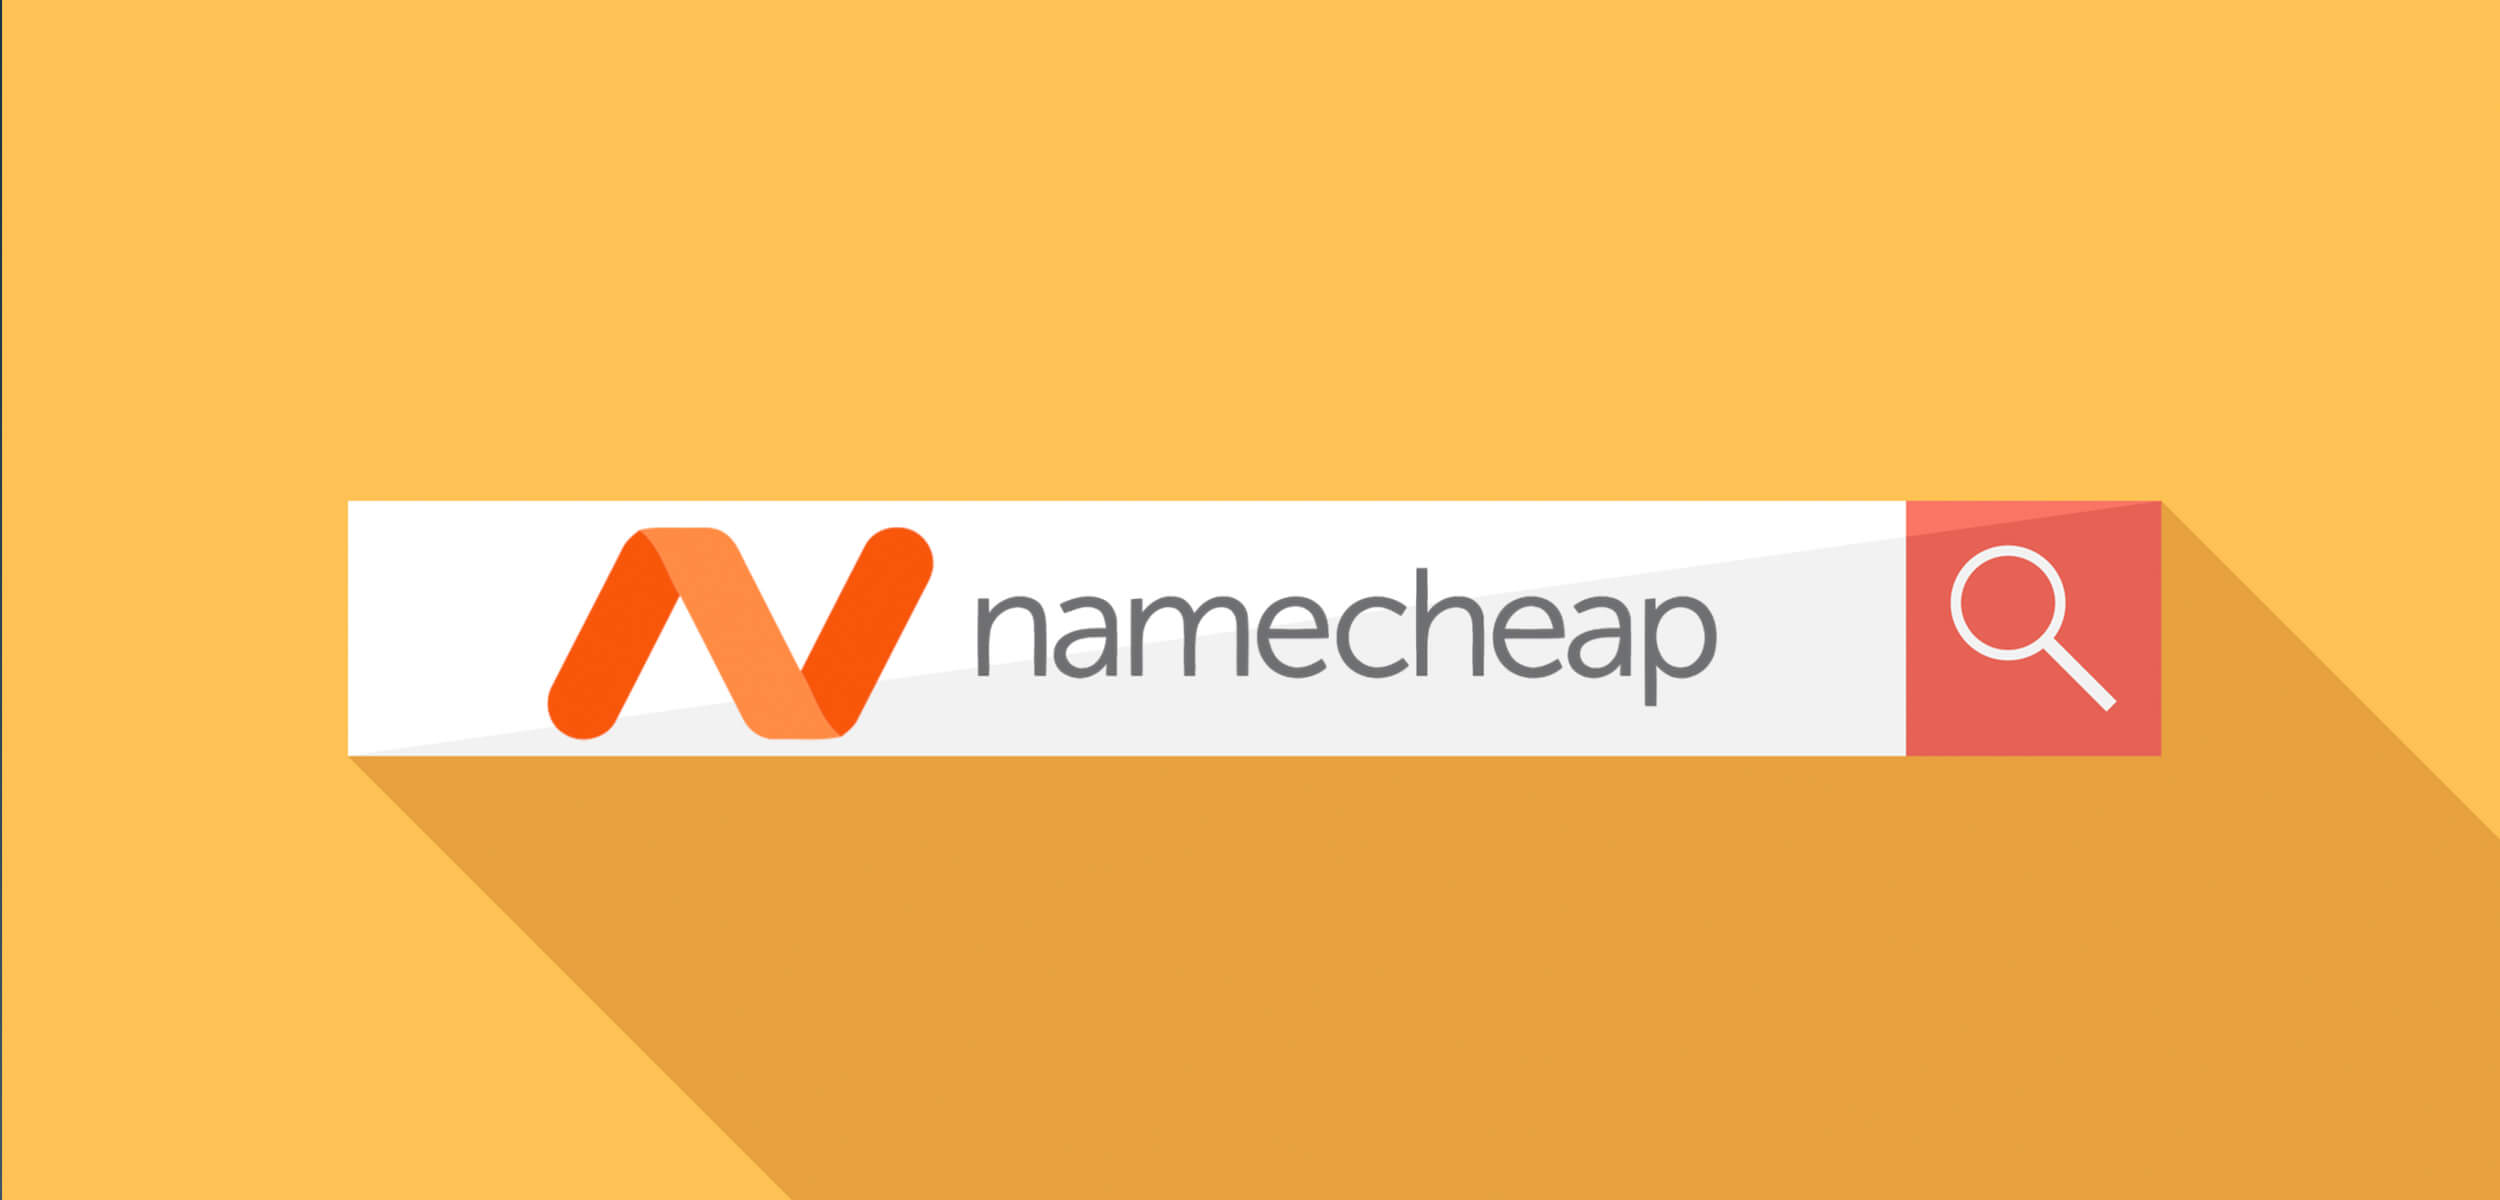 Does Namecheap live up to its name?